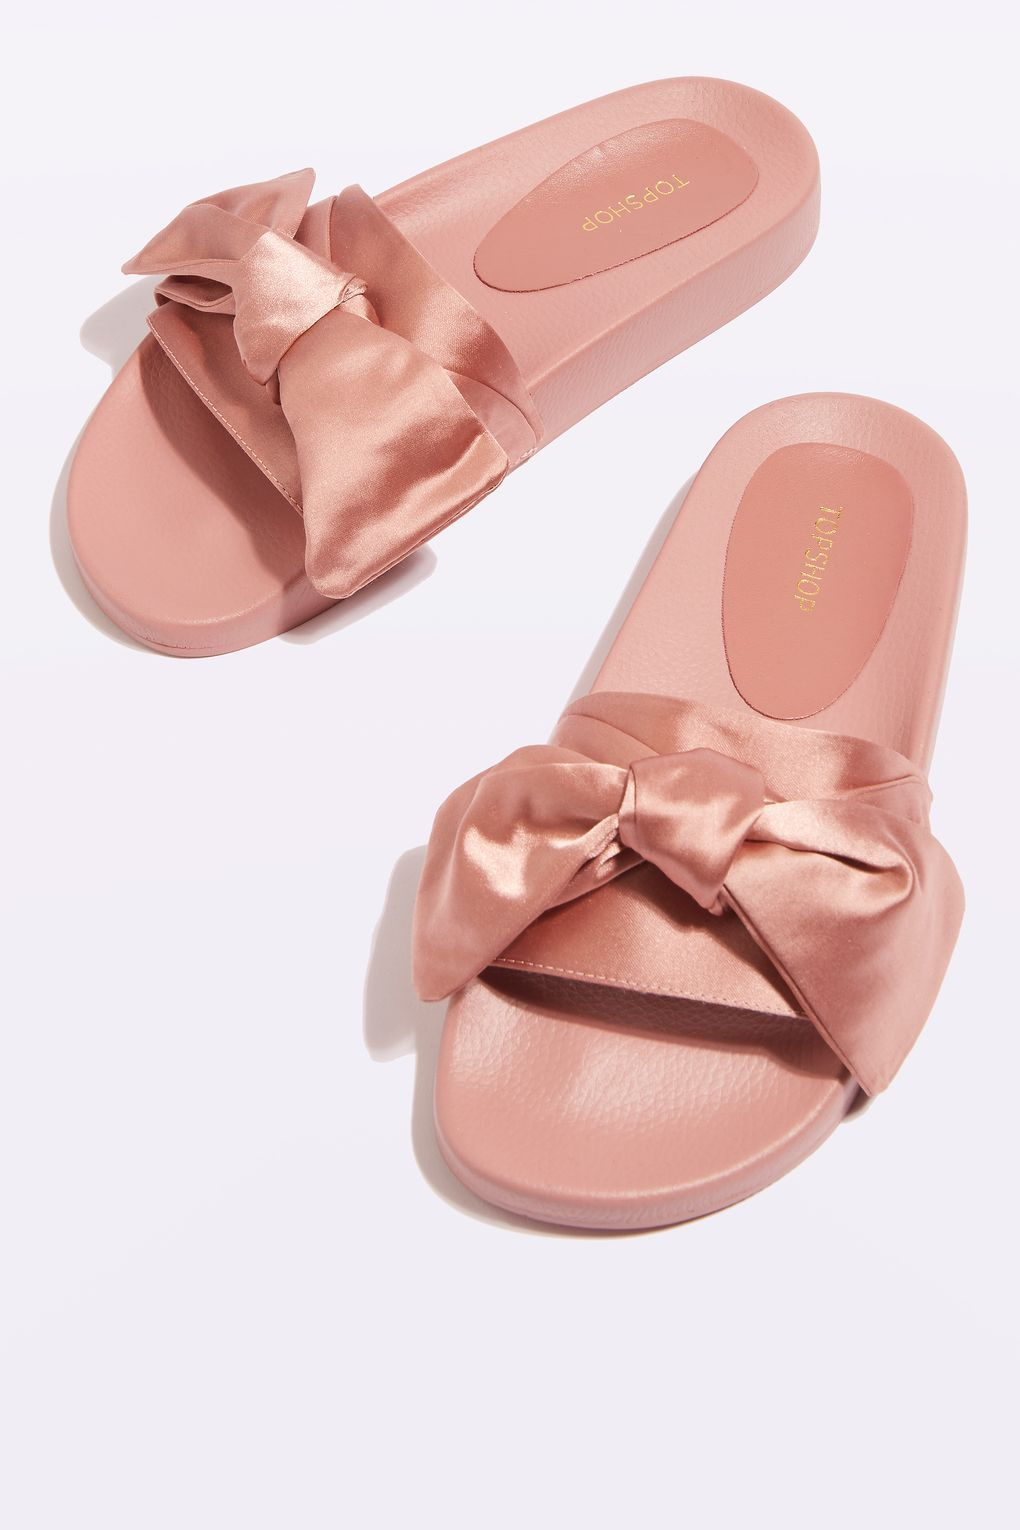 pick up 84e42 99a14 Carousel Image 0 | Sandals | Topshop shoes, Bow slides, Bow ...